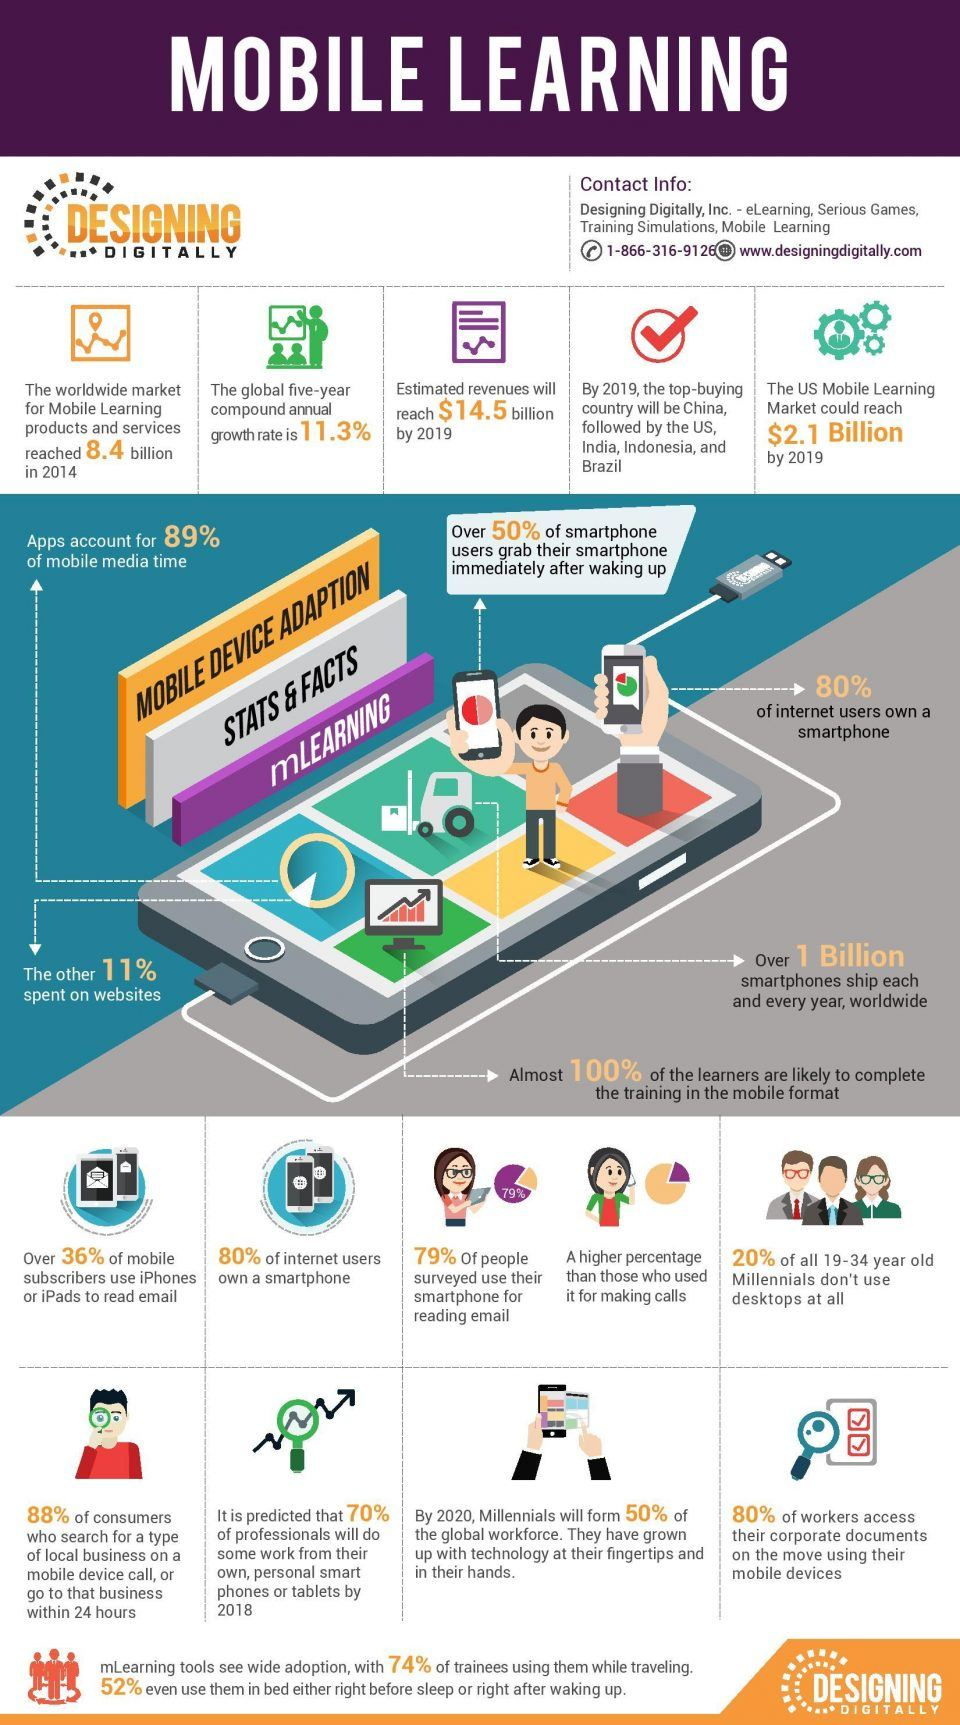 Mobile Device Adoption Stats and Facts Infographic